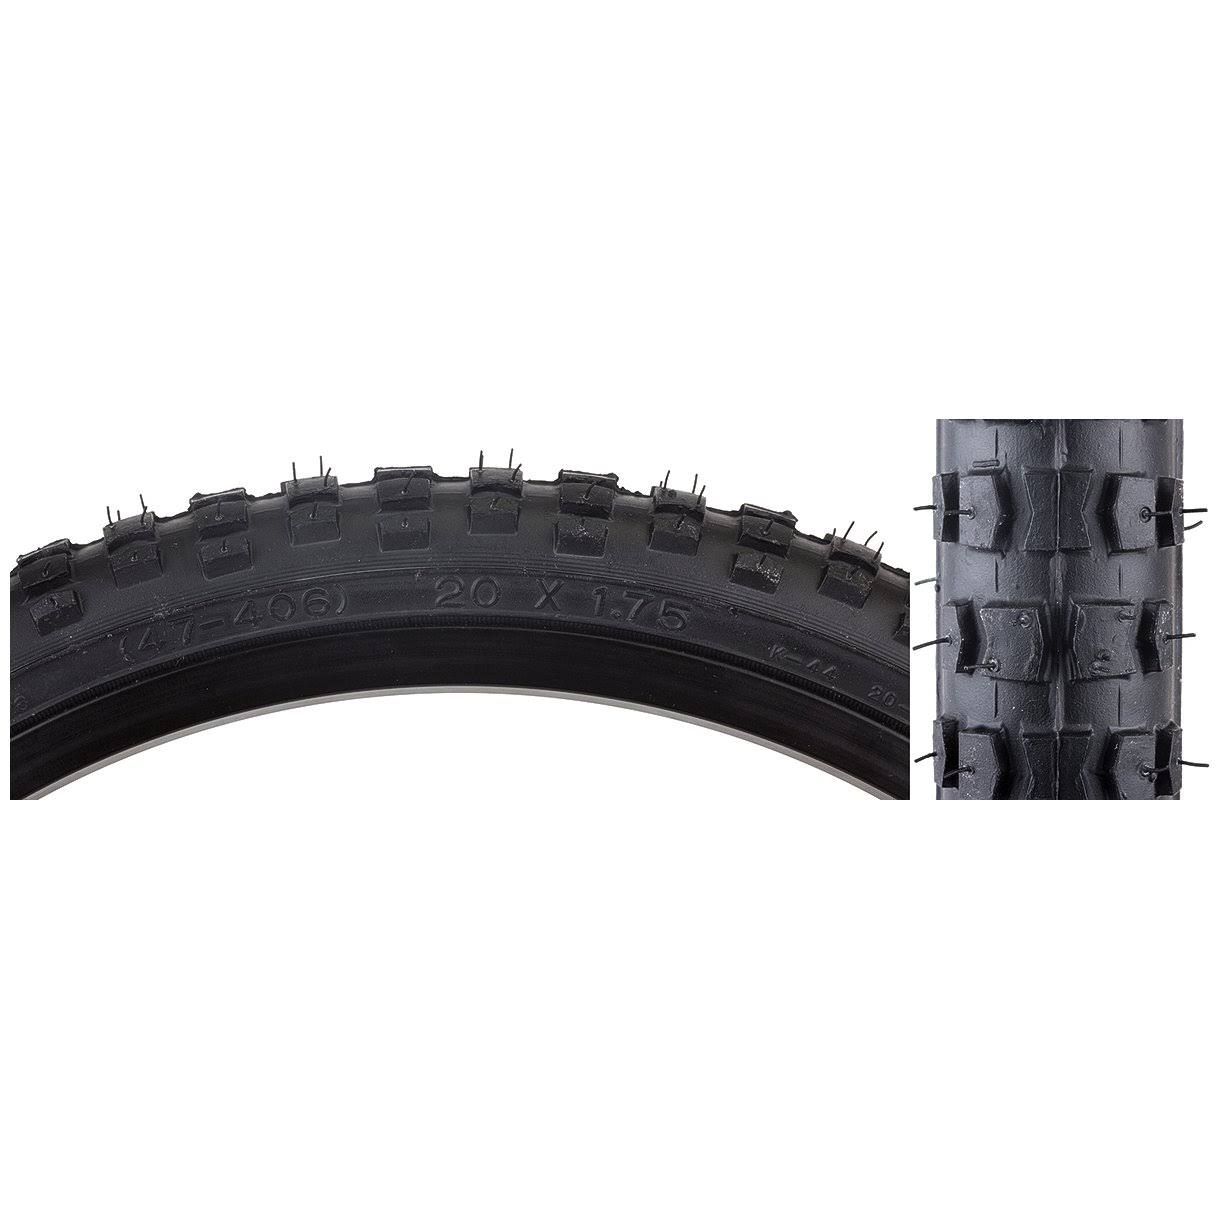 "Sunlite MX BMX Bike Tire - Black, 20"" x 1.75"""